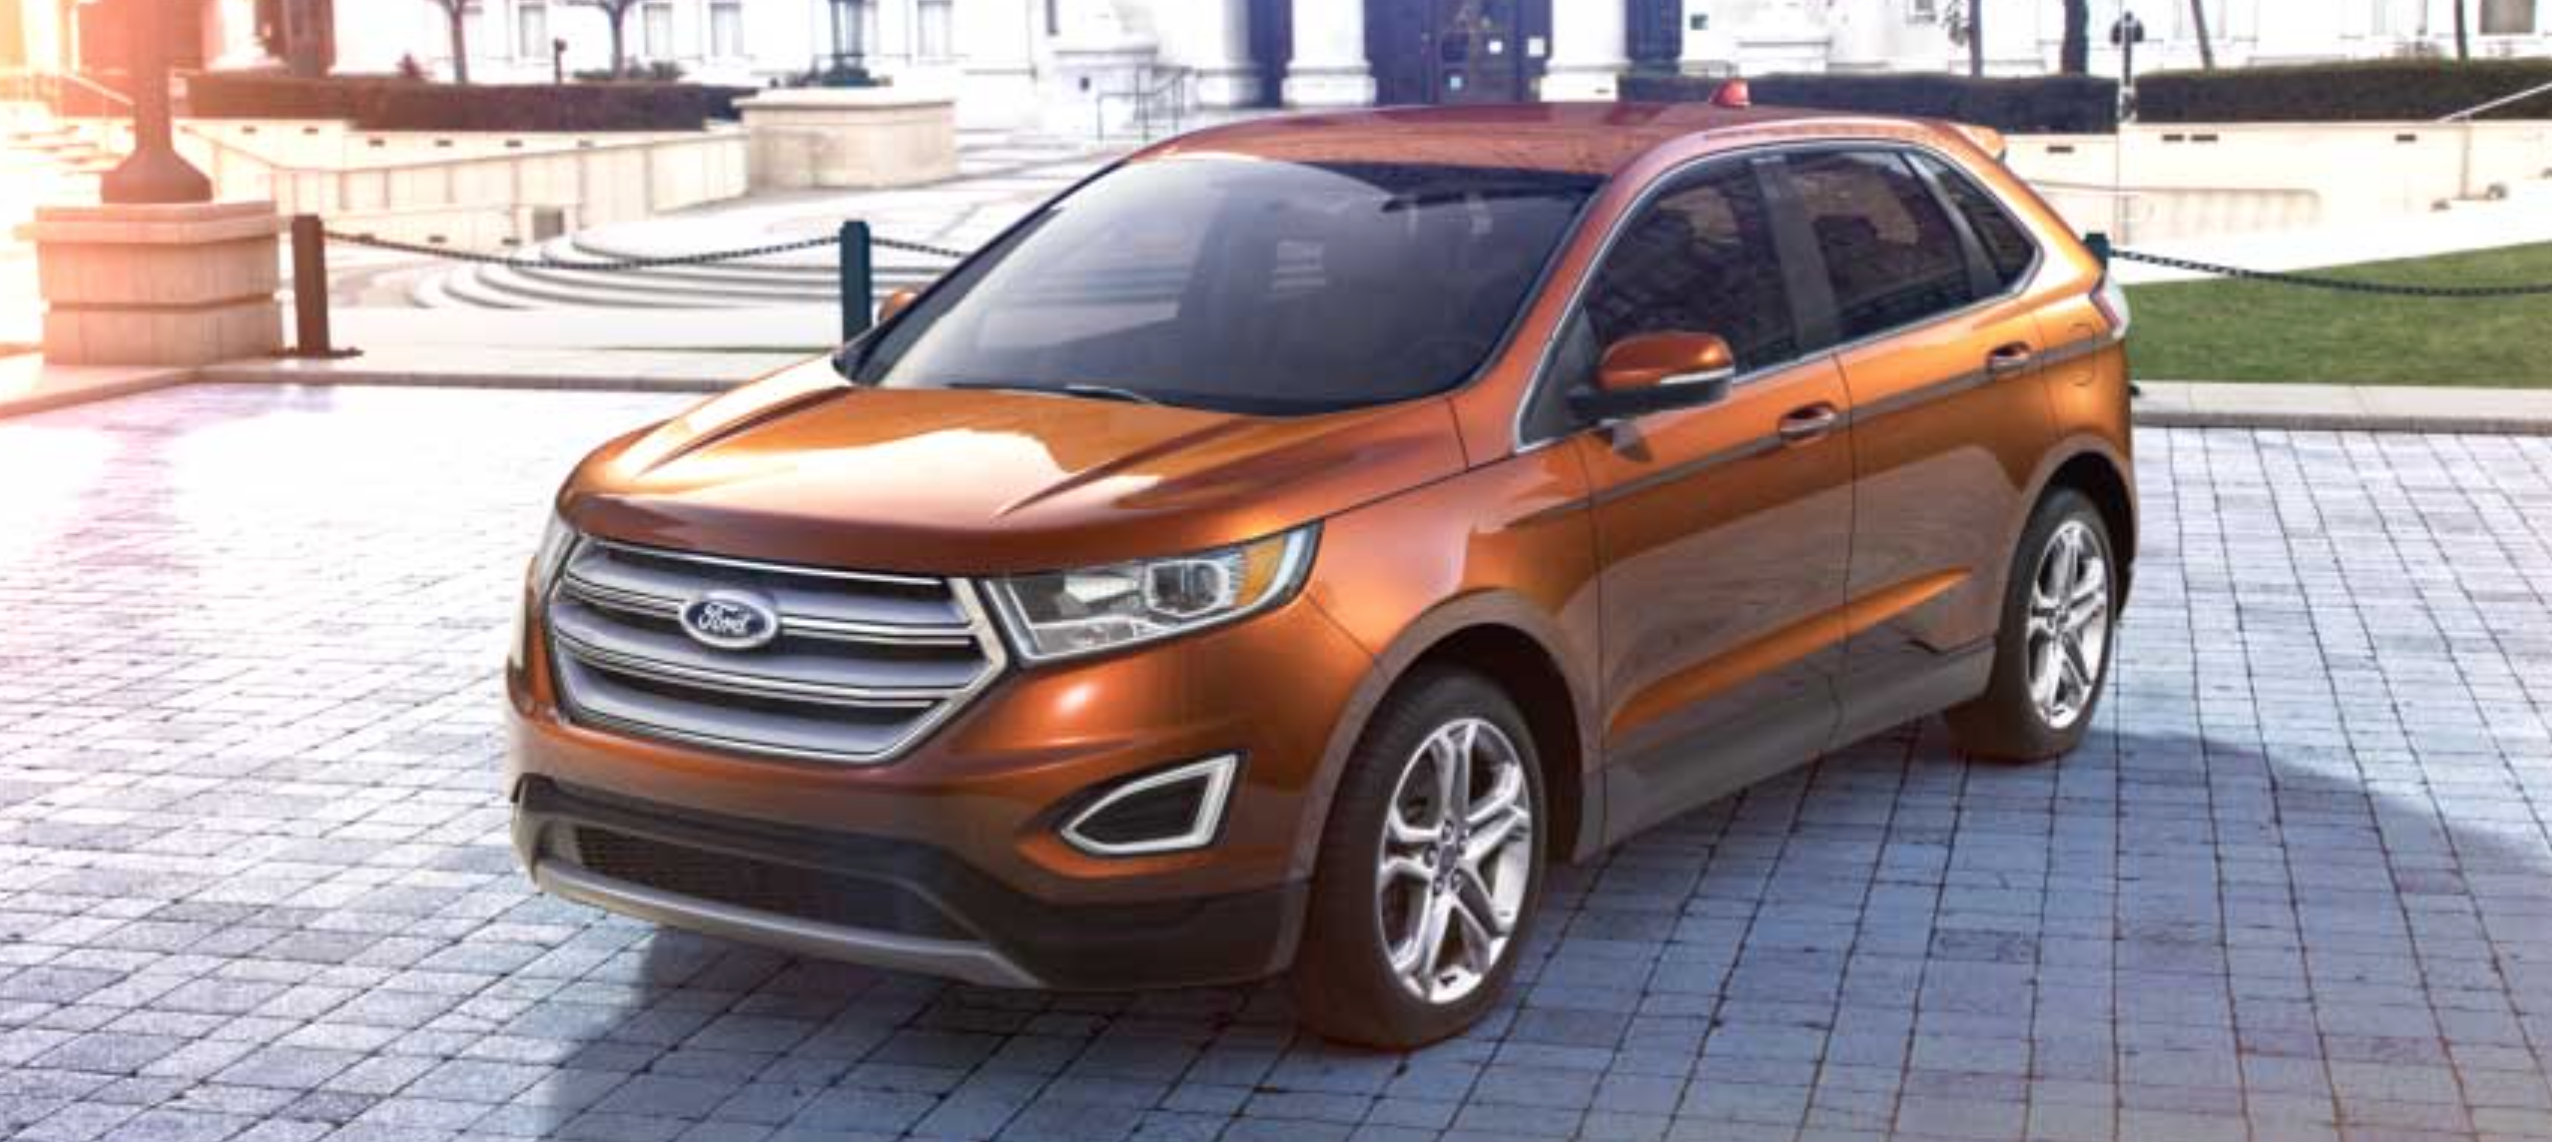 ford edge for sale long island ny ford deals. Black Bedroom Furniture Sets. Home Design Ideas